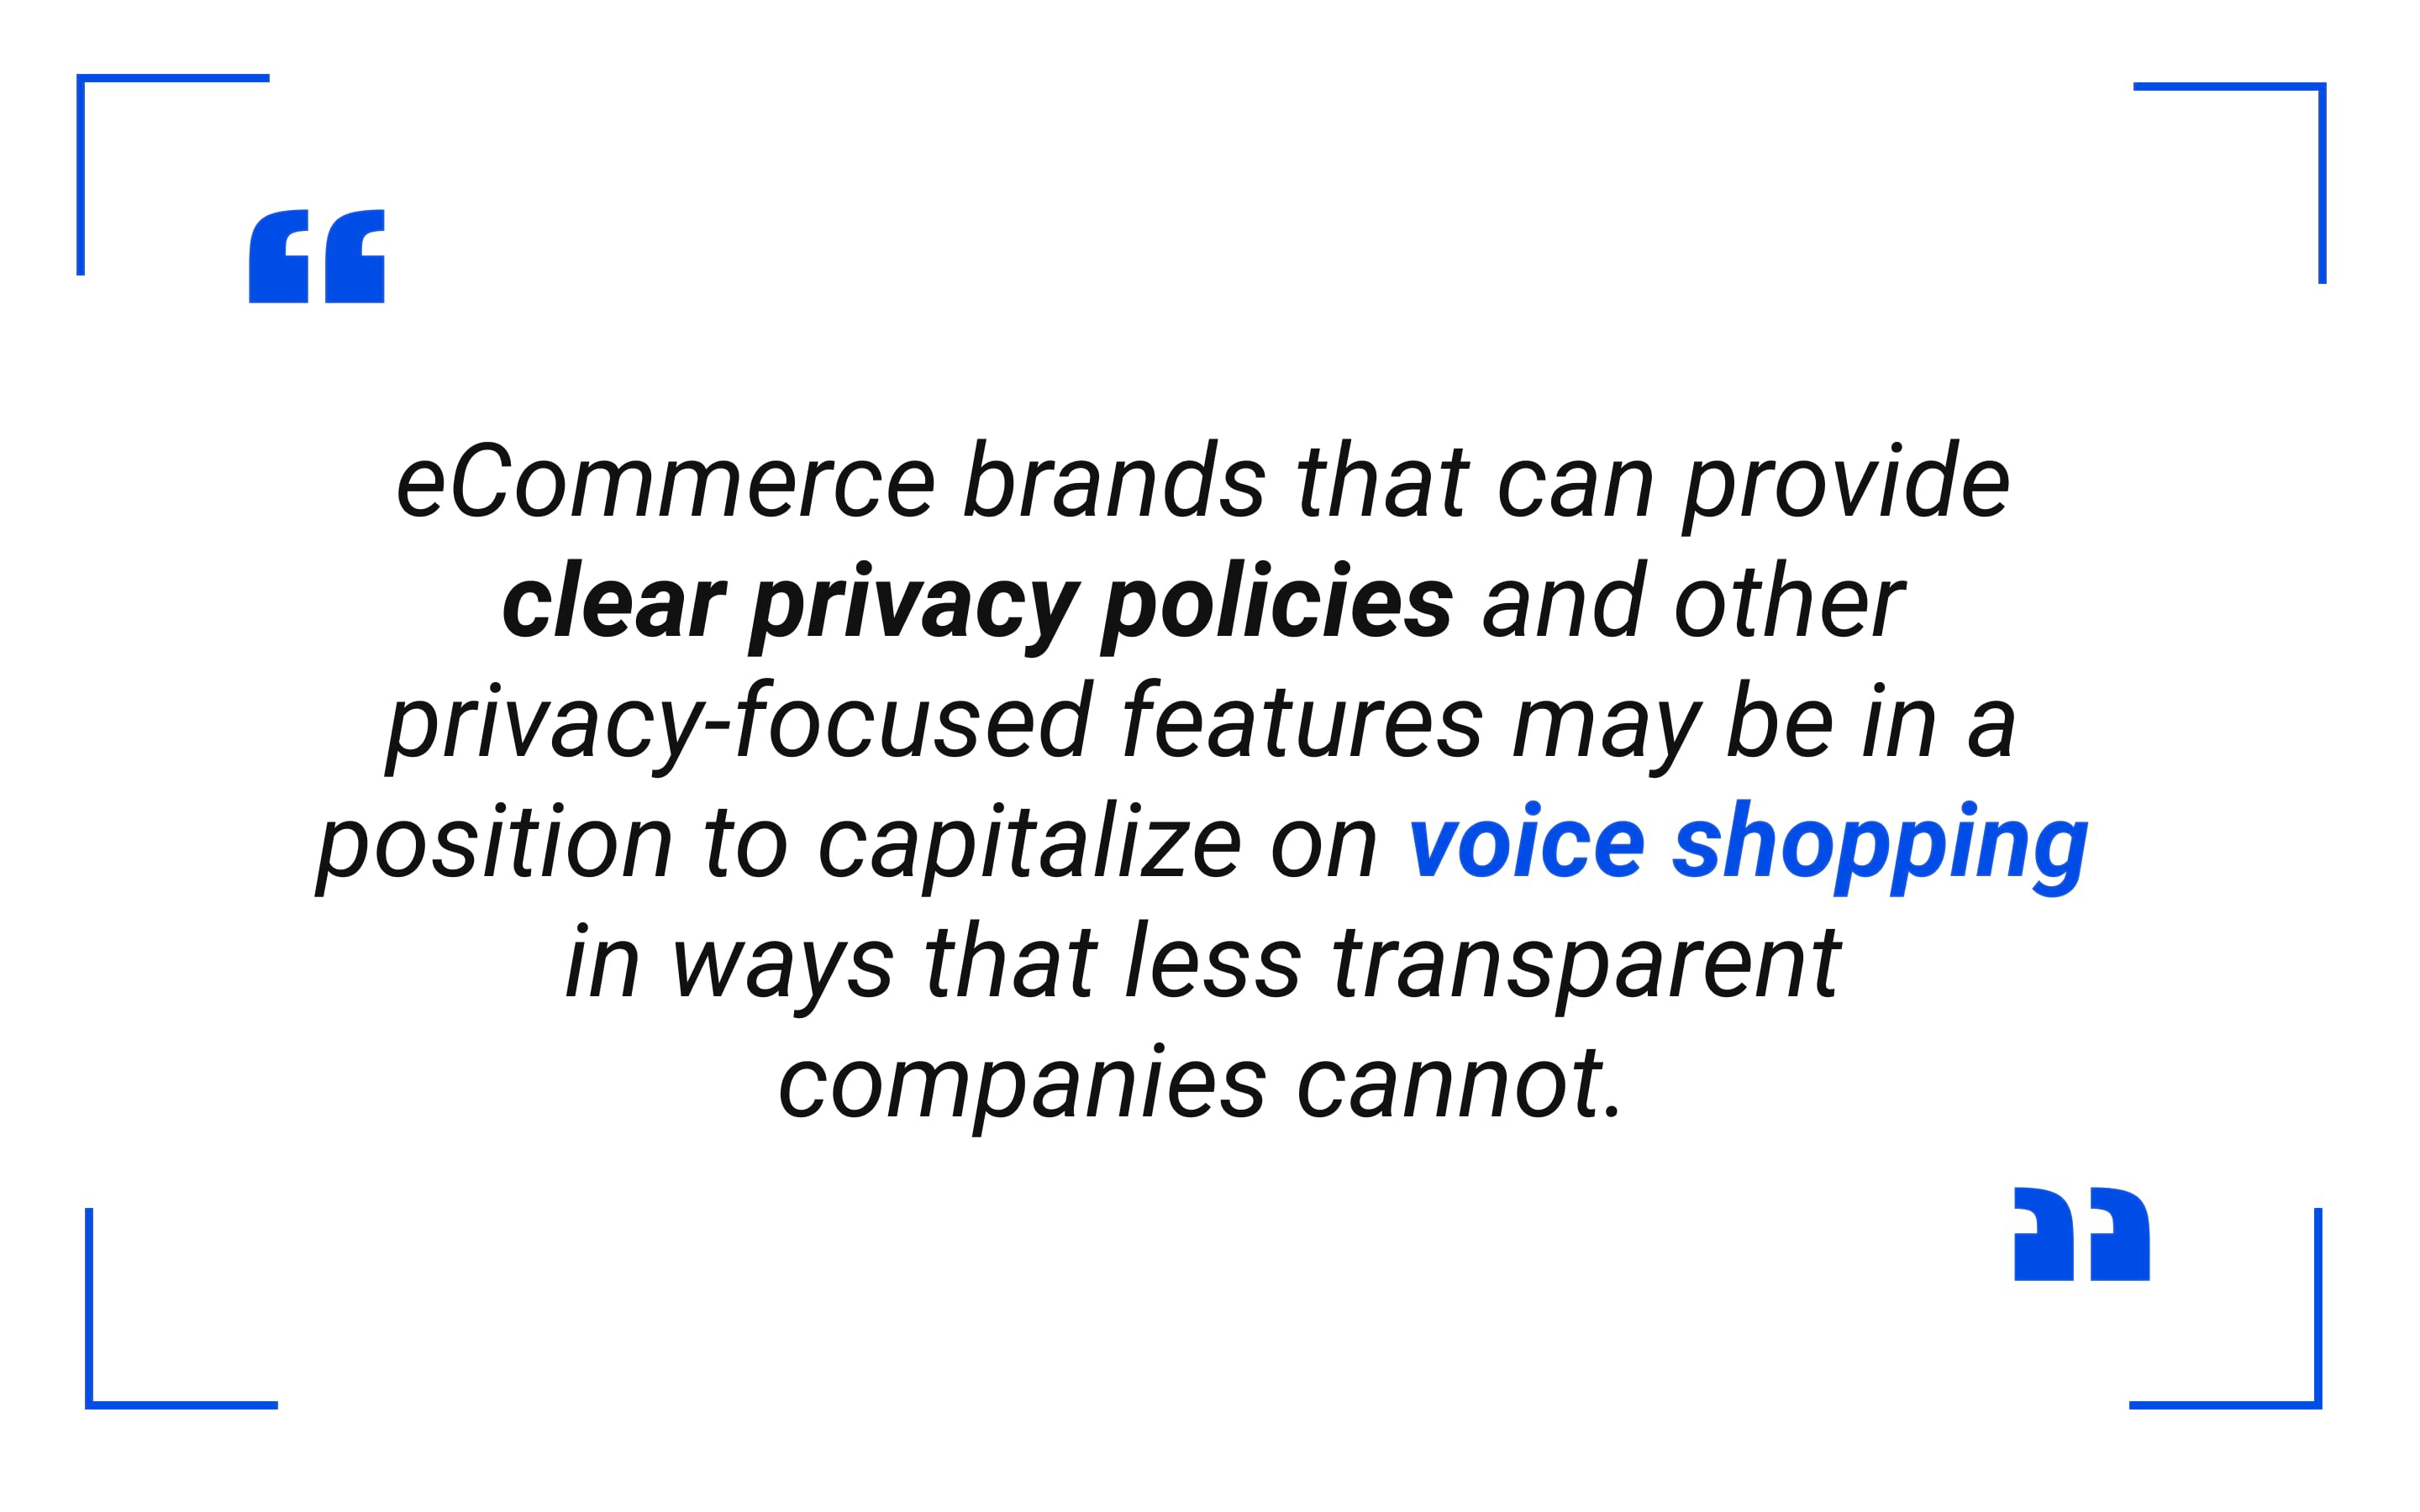 eCommerce brands that can provide clear privacy policies